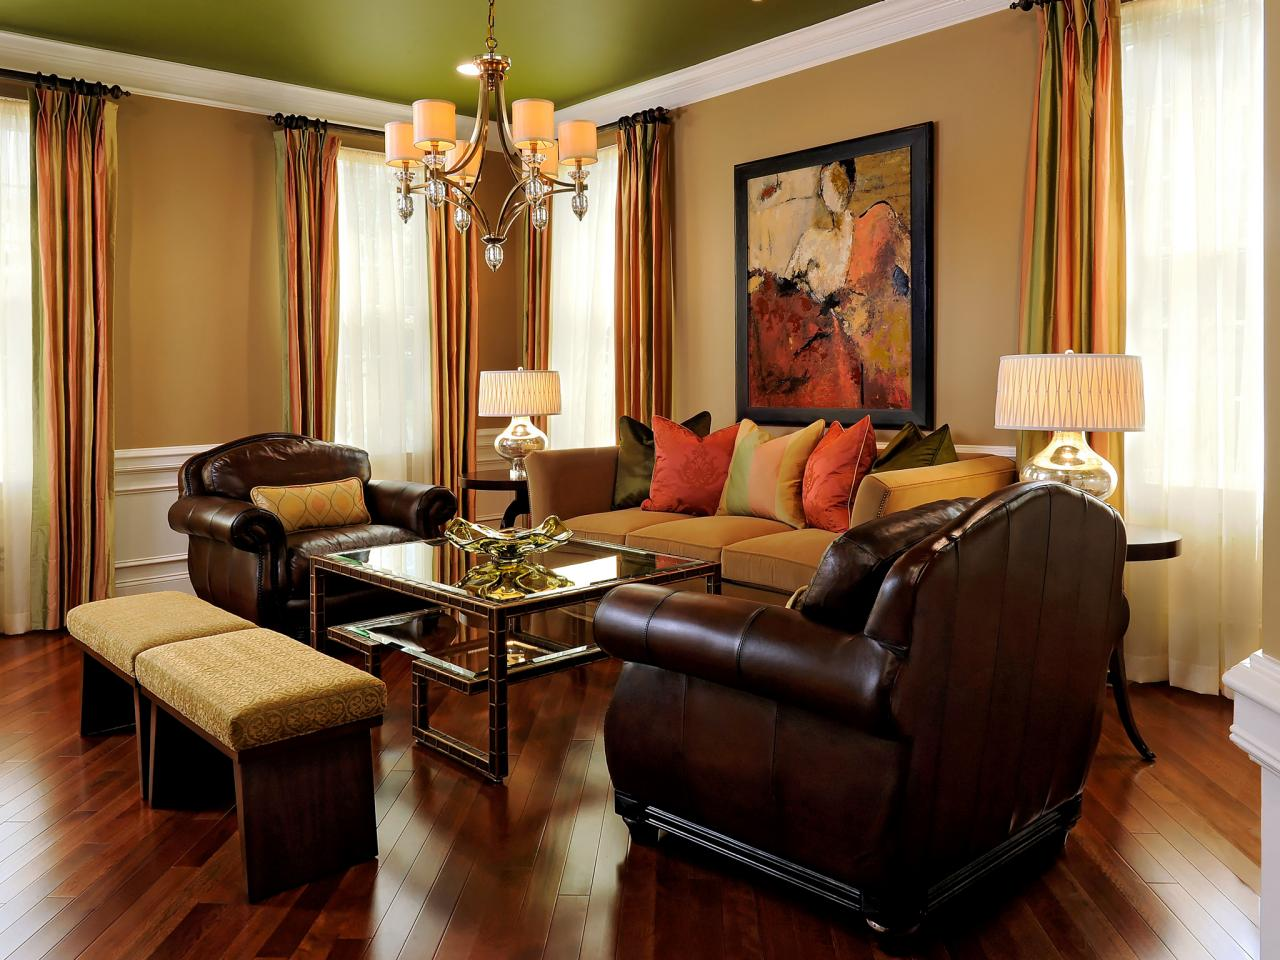 Outdated home brought back to life paula grace halewski for Living room ideas in brown